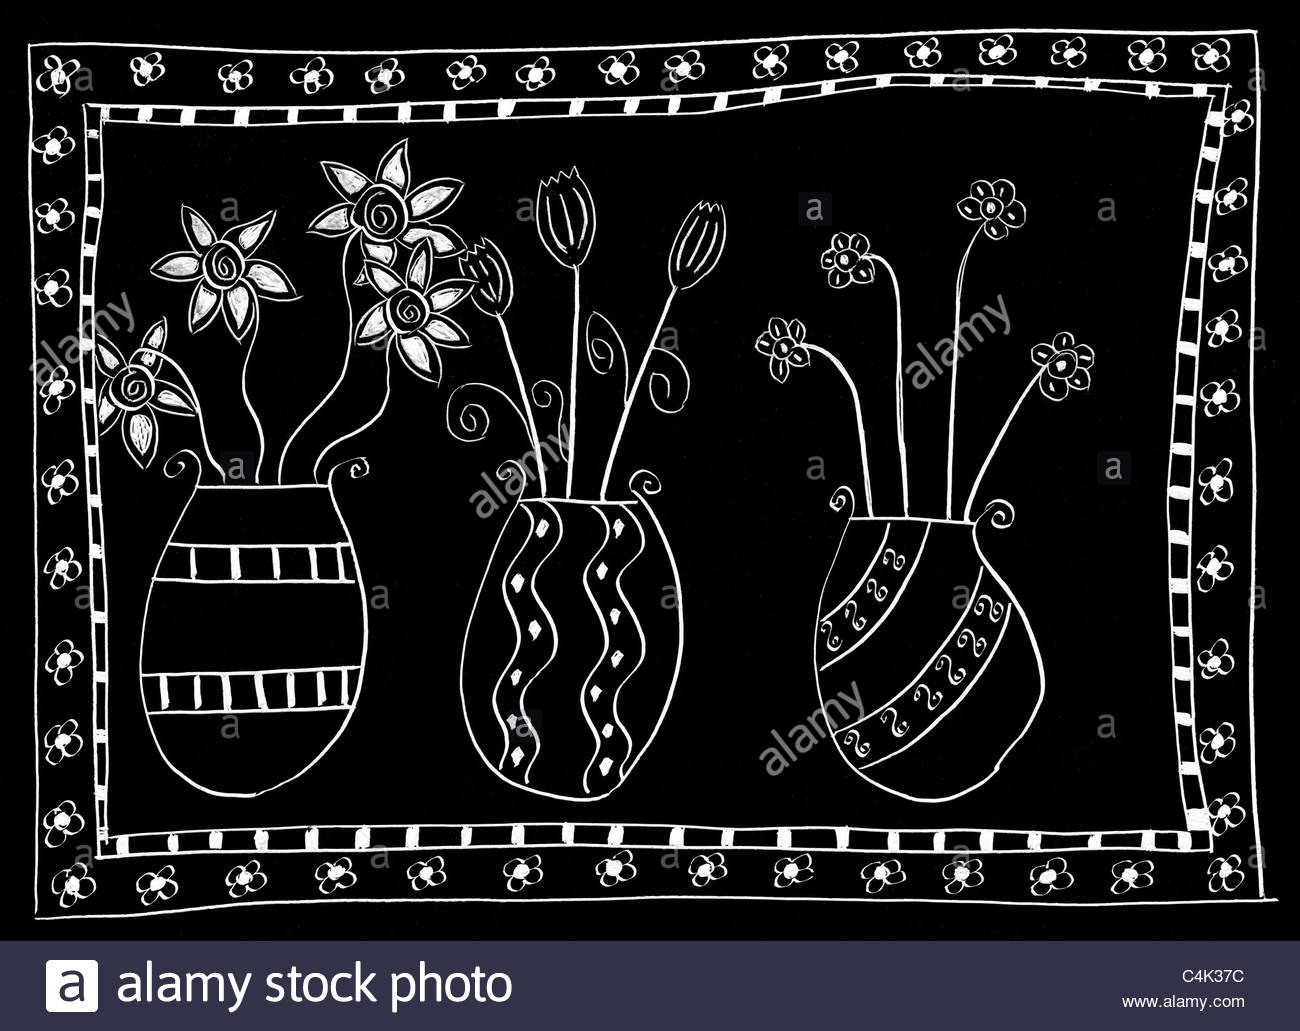 Black and white scraper of three vases with flowers, with a flower border - Stock Image